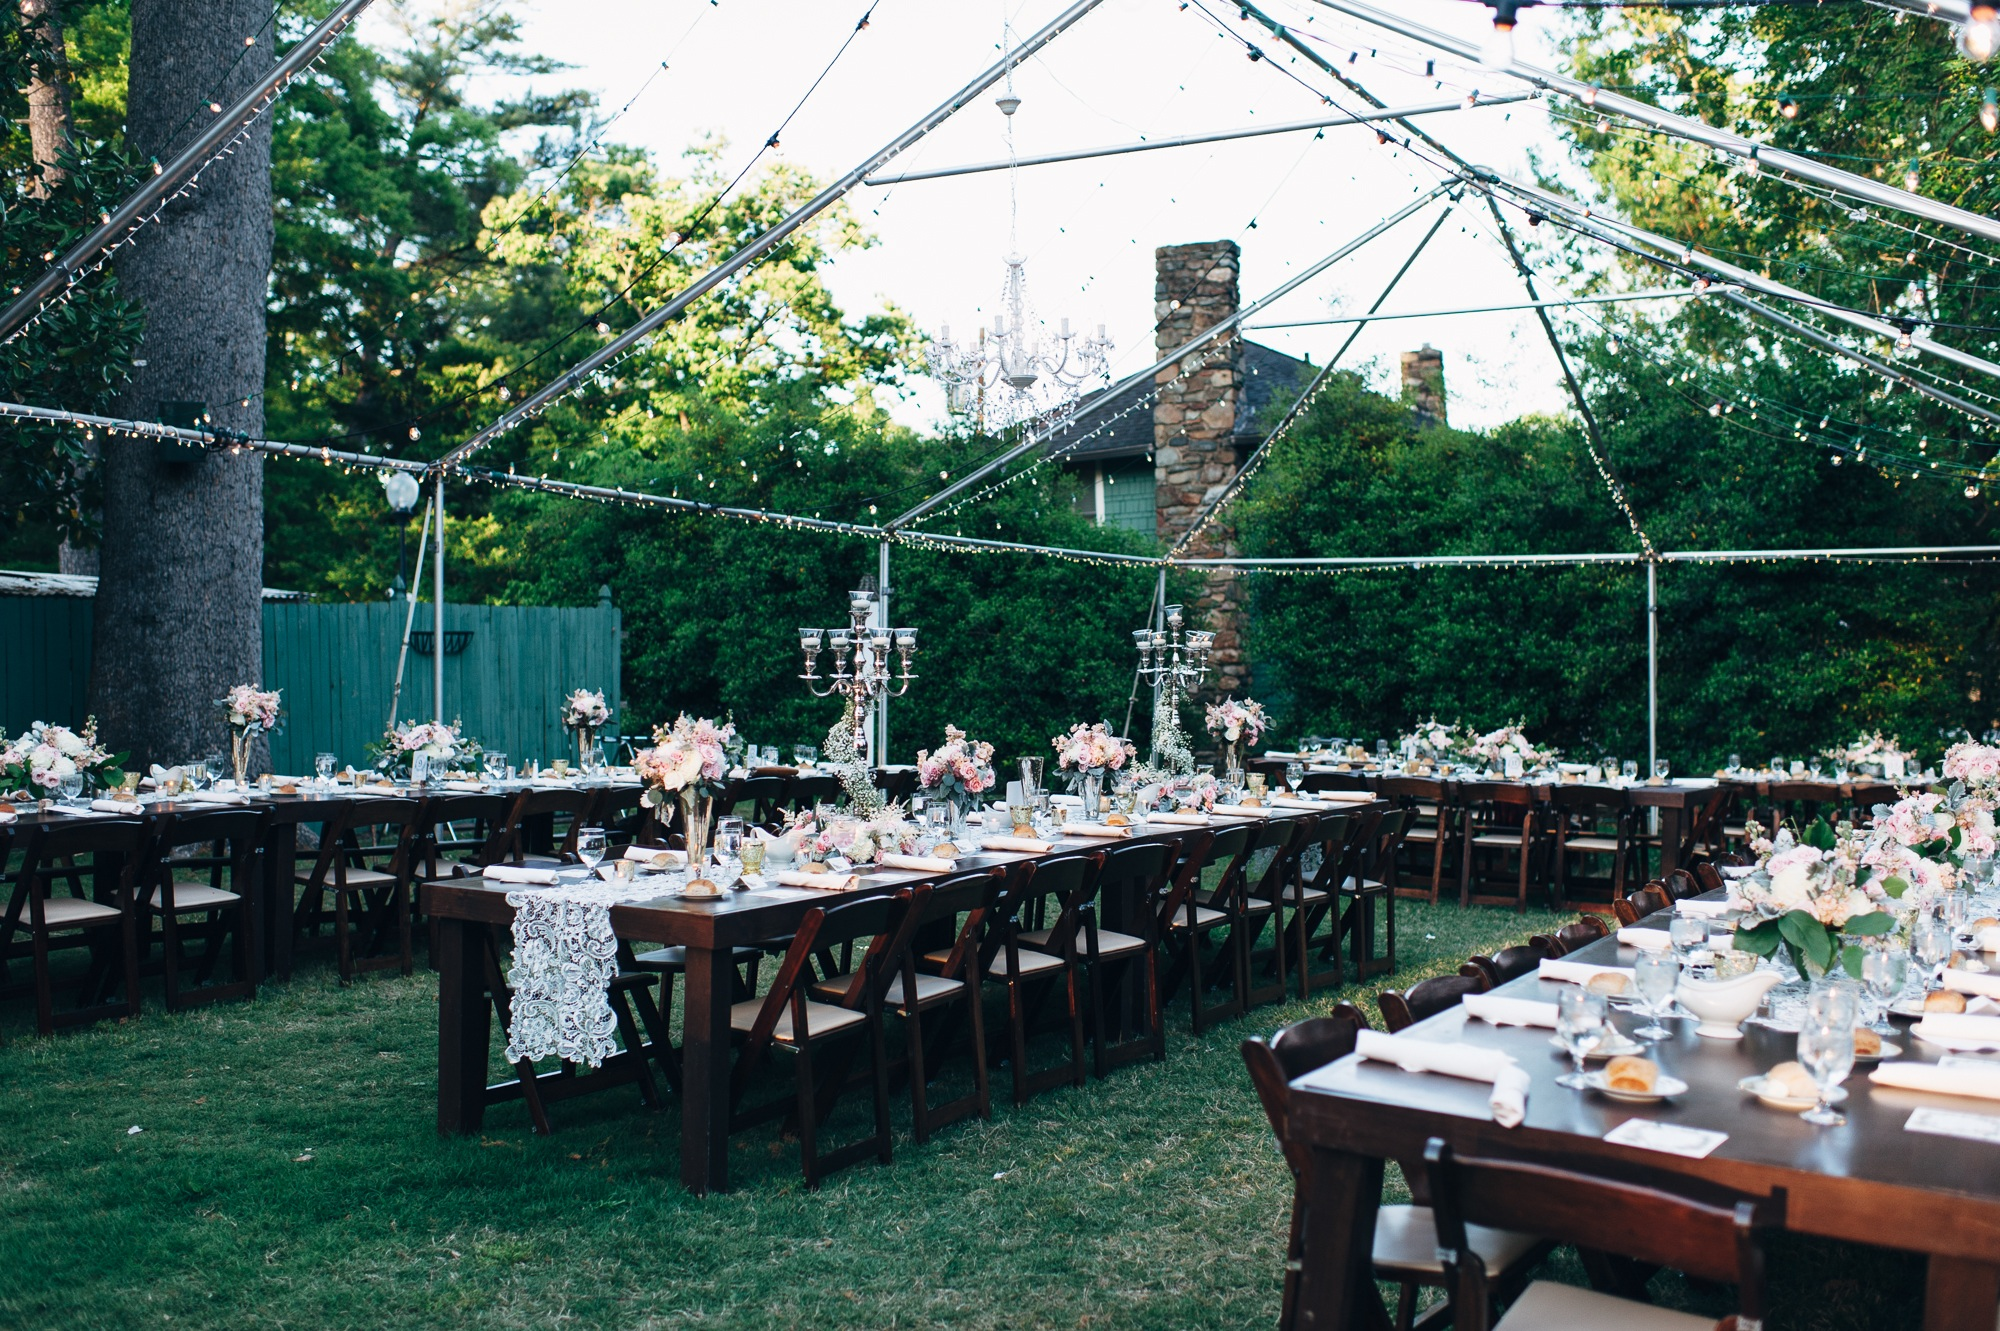 charlotte-wedding-26-08032015-ky